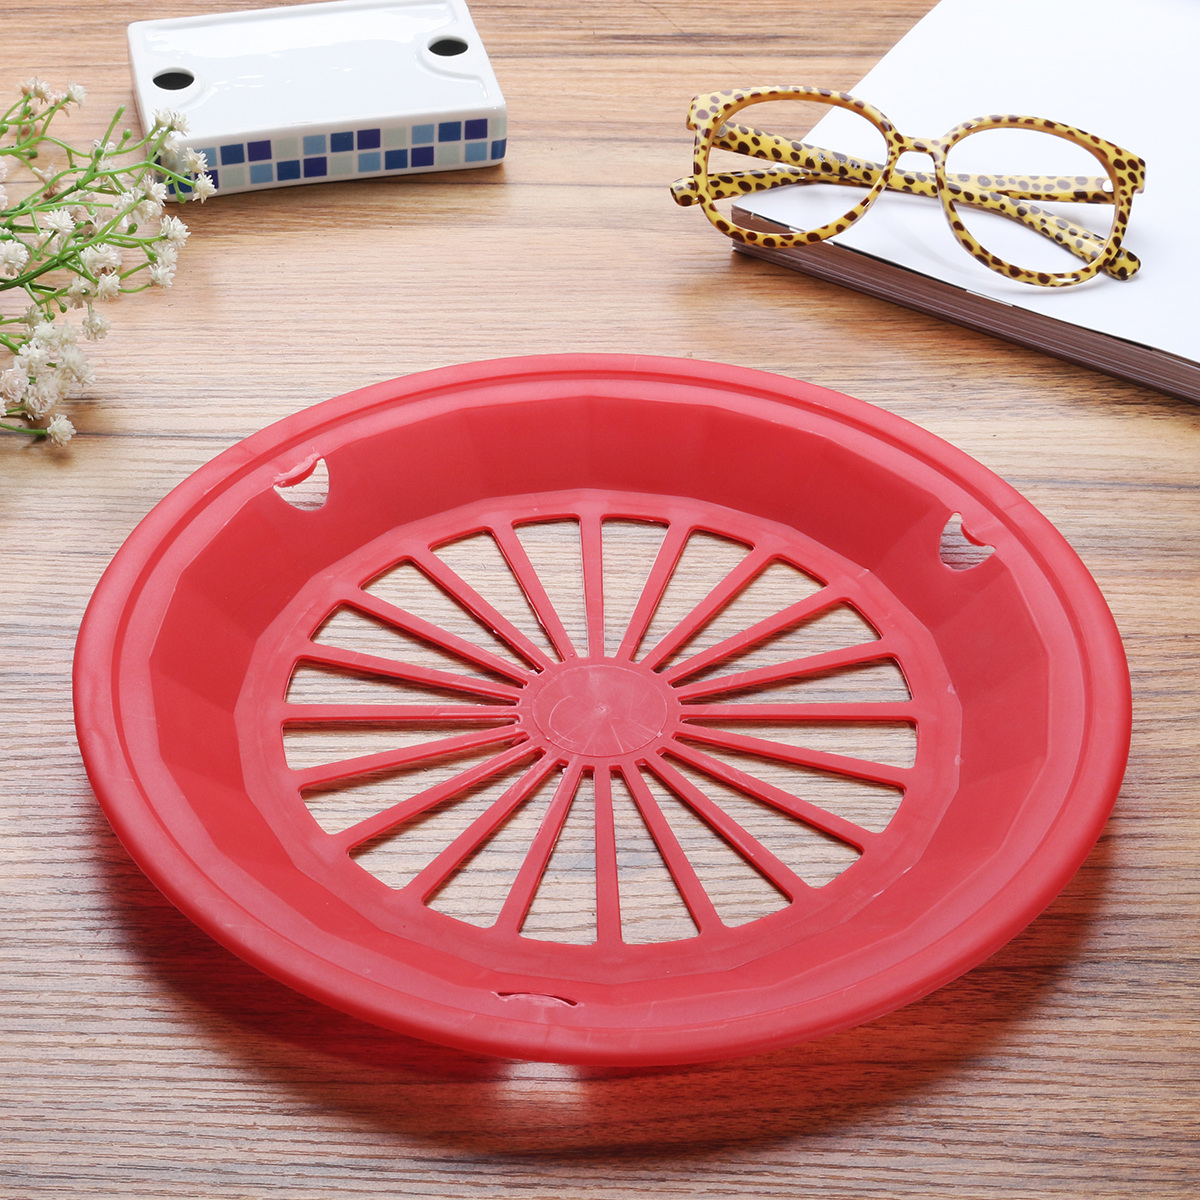 10 6 plastic paper plate holders picnic bbq parties camping